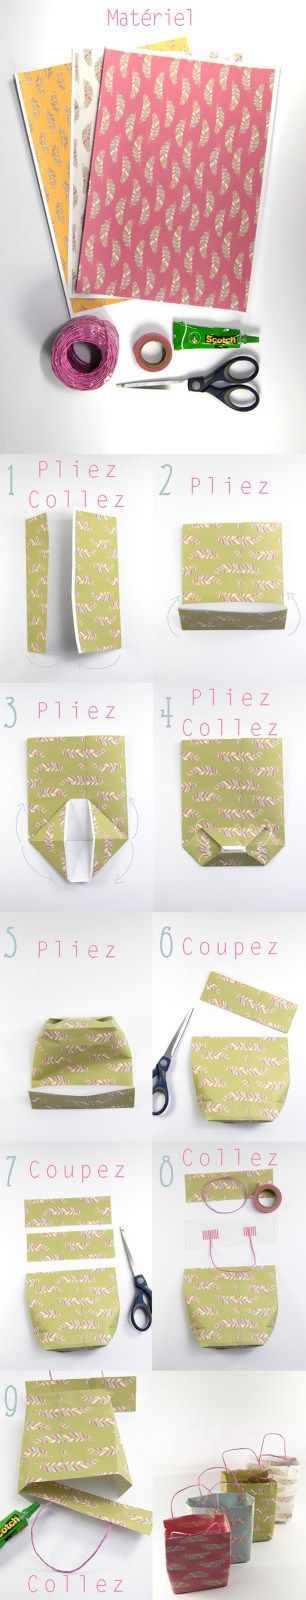 DIY-little-paper-bag.jpg